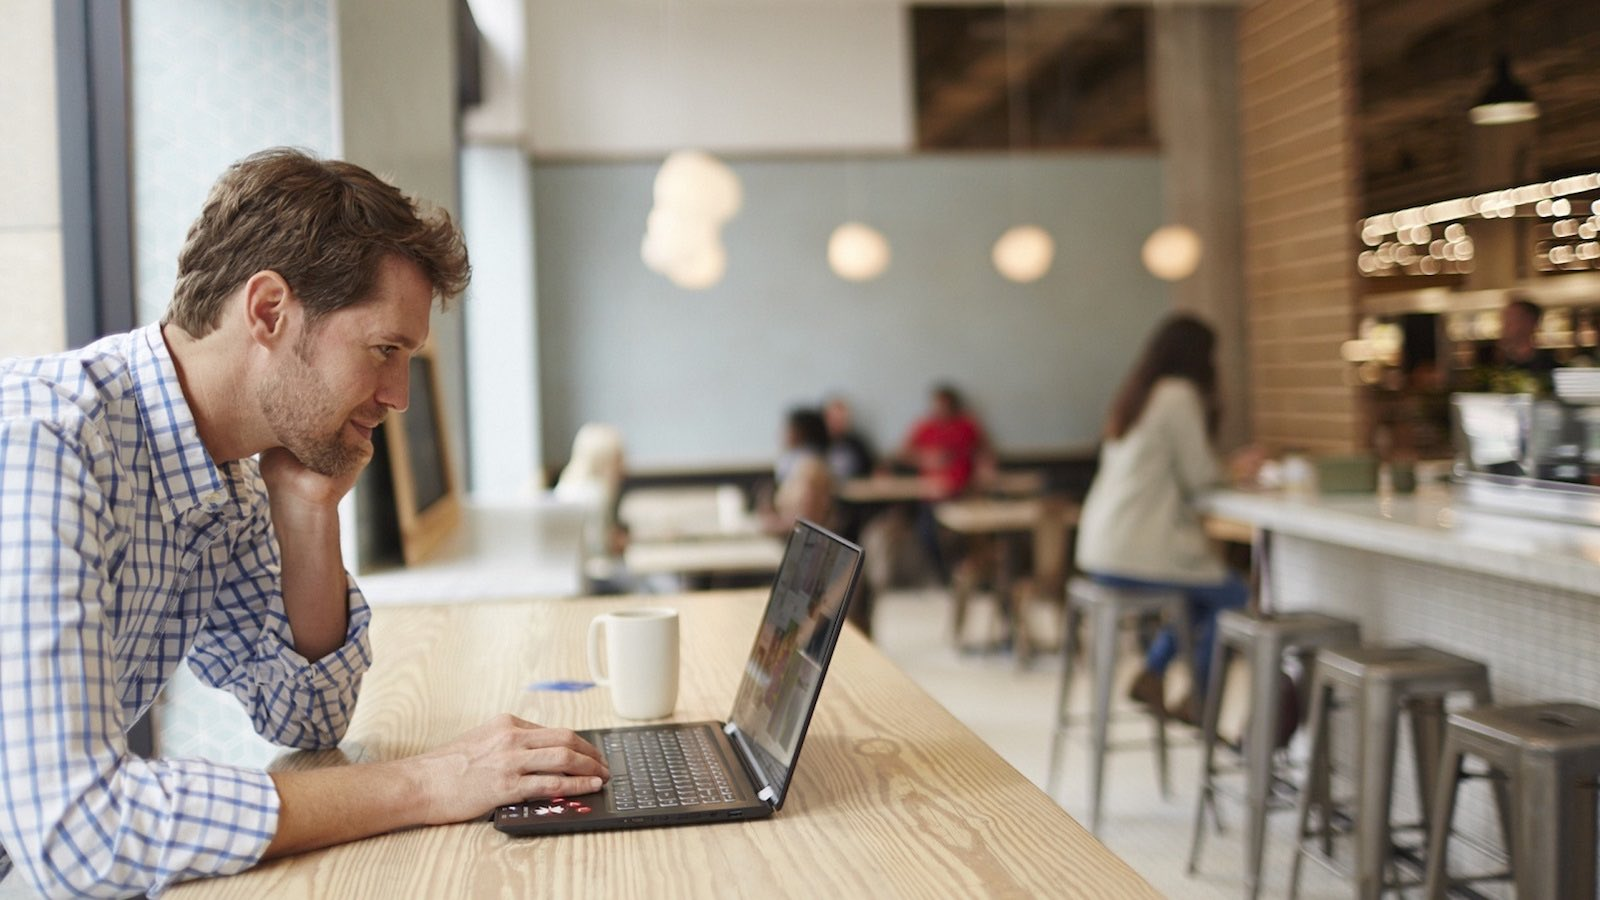 Man viewing his laptop at cafe while having coffee.